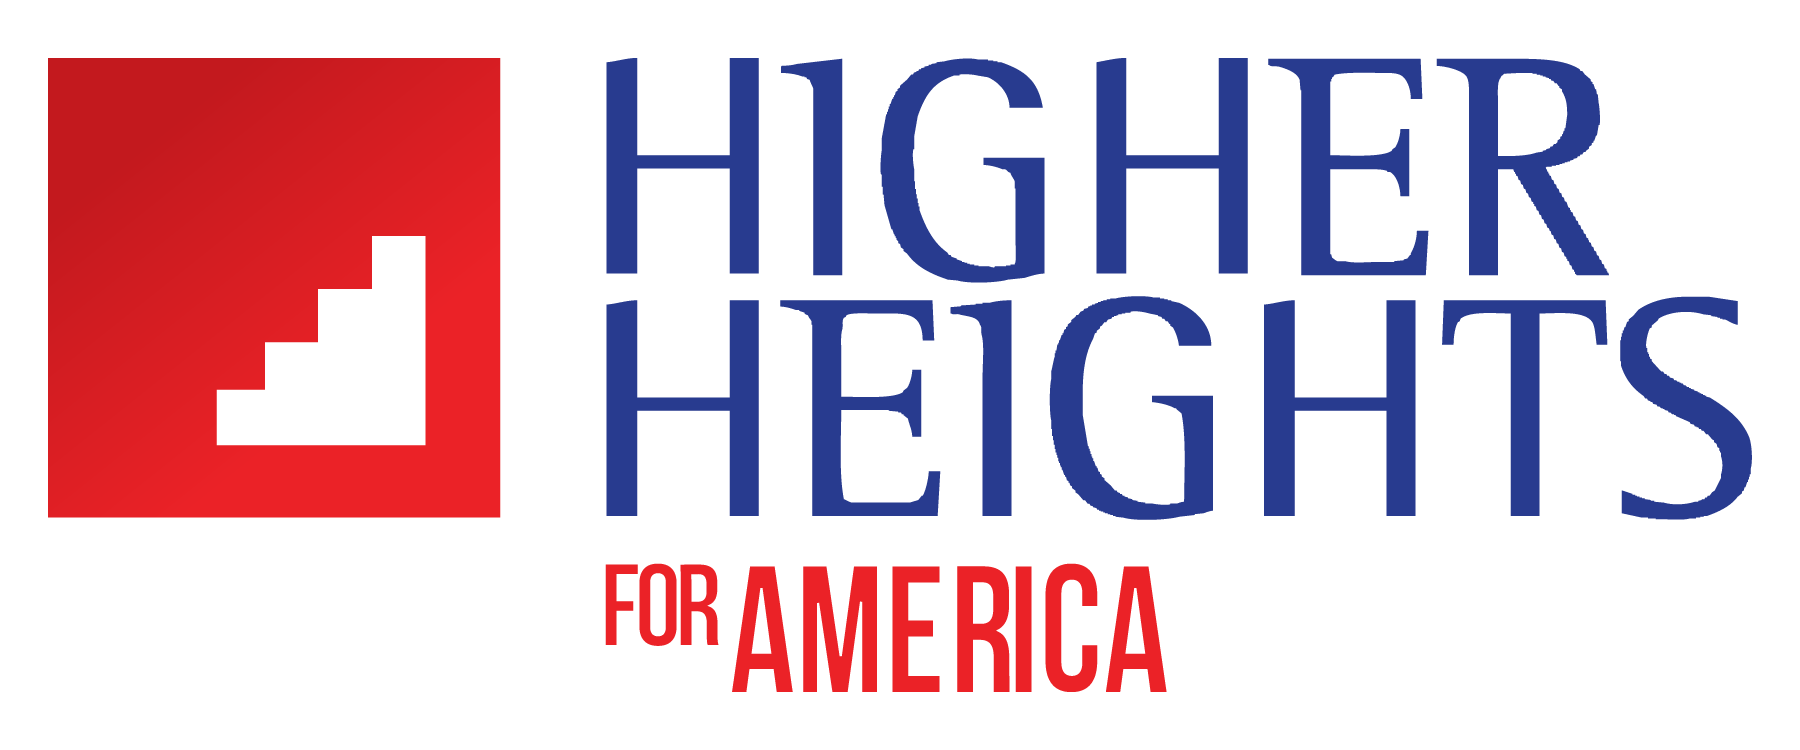 Higher Heights for America Logo